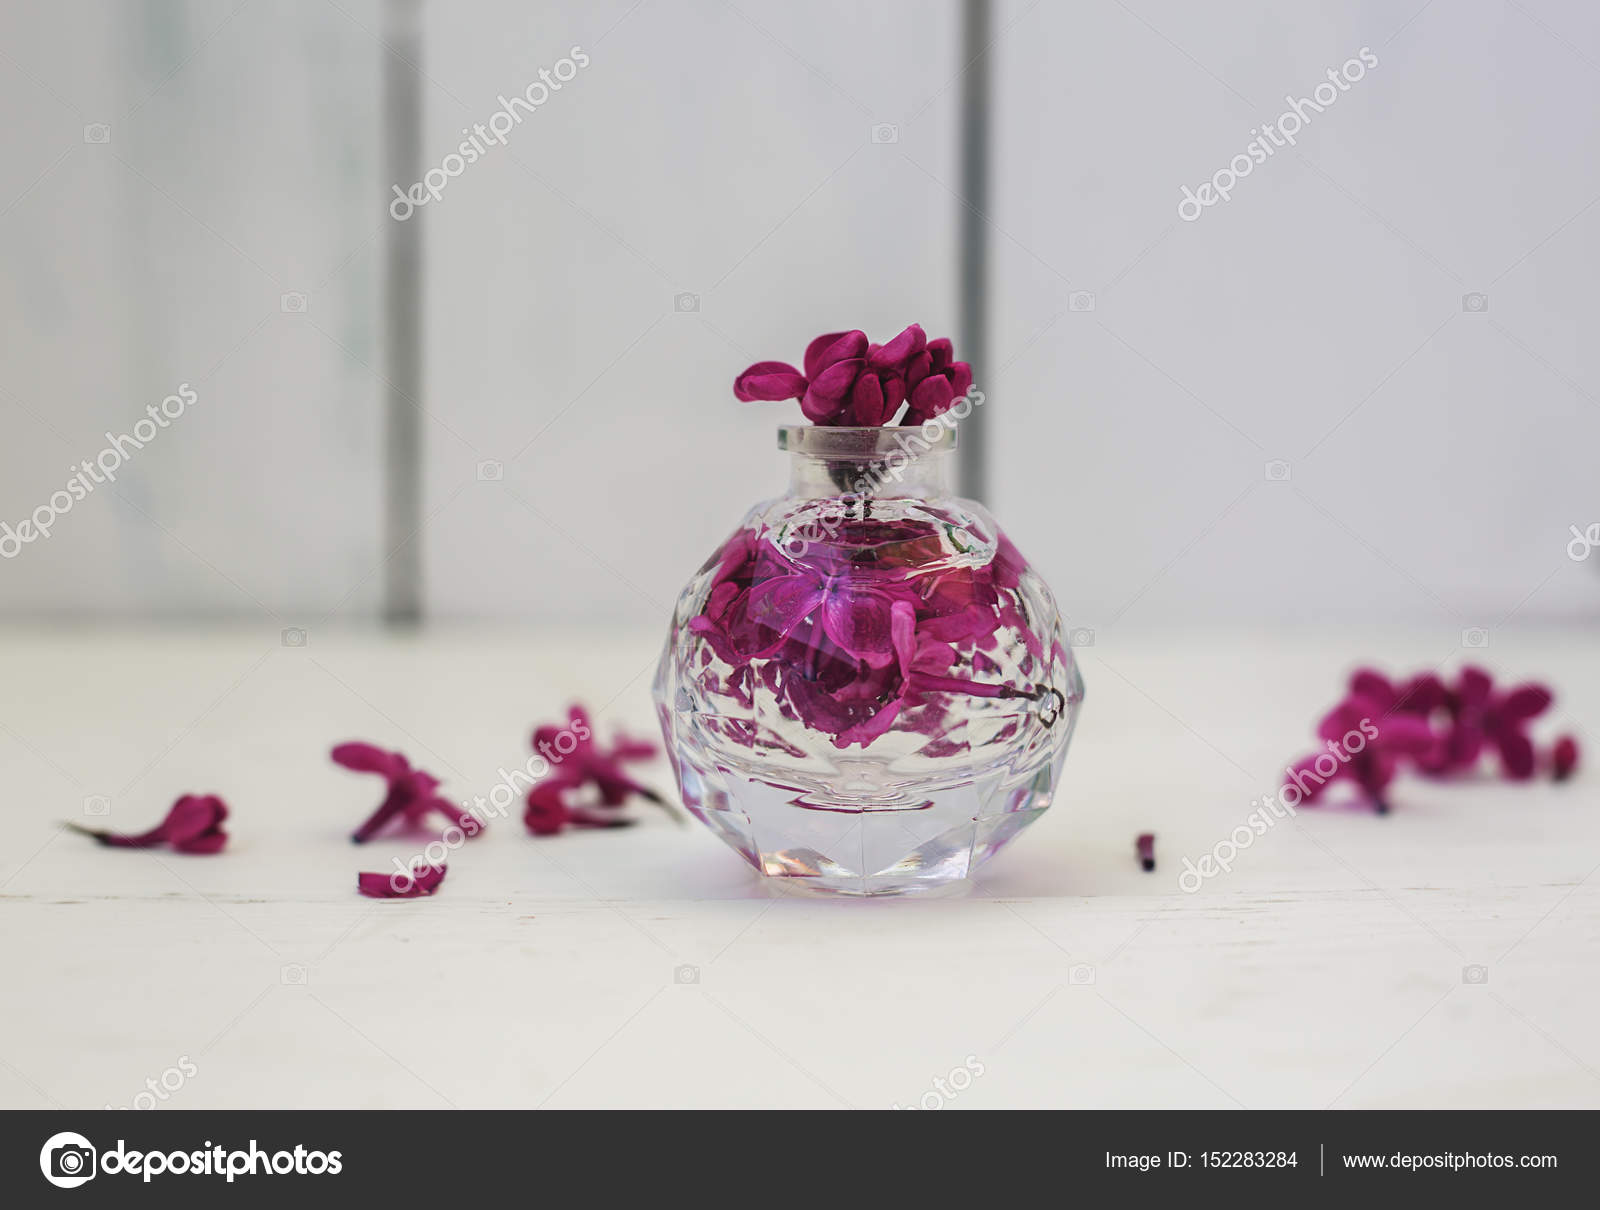 Perfume Bottle With Pink Flower Stock Photo Martyna1802 152283284